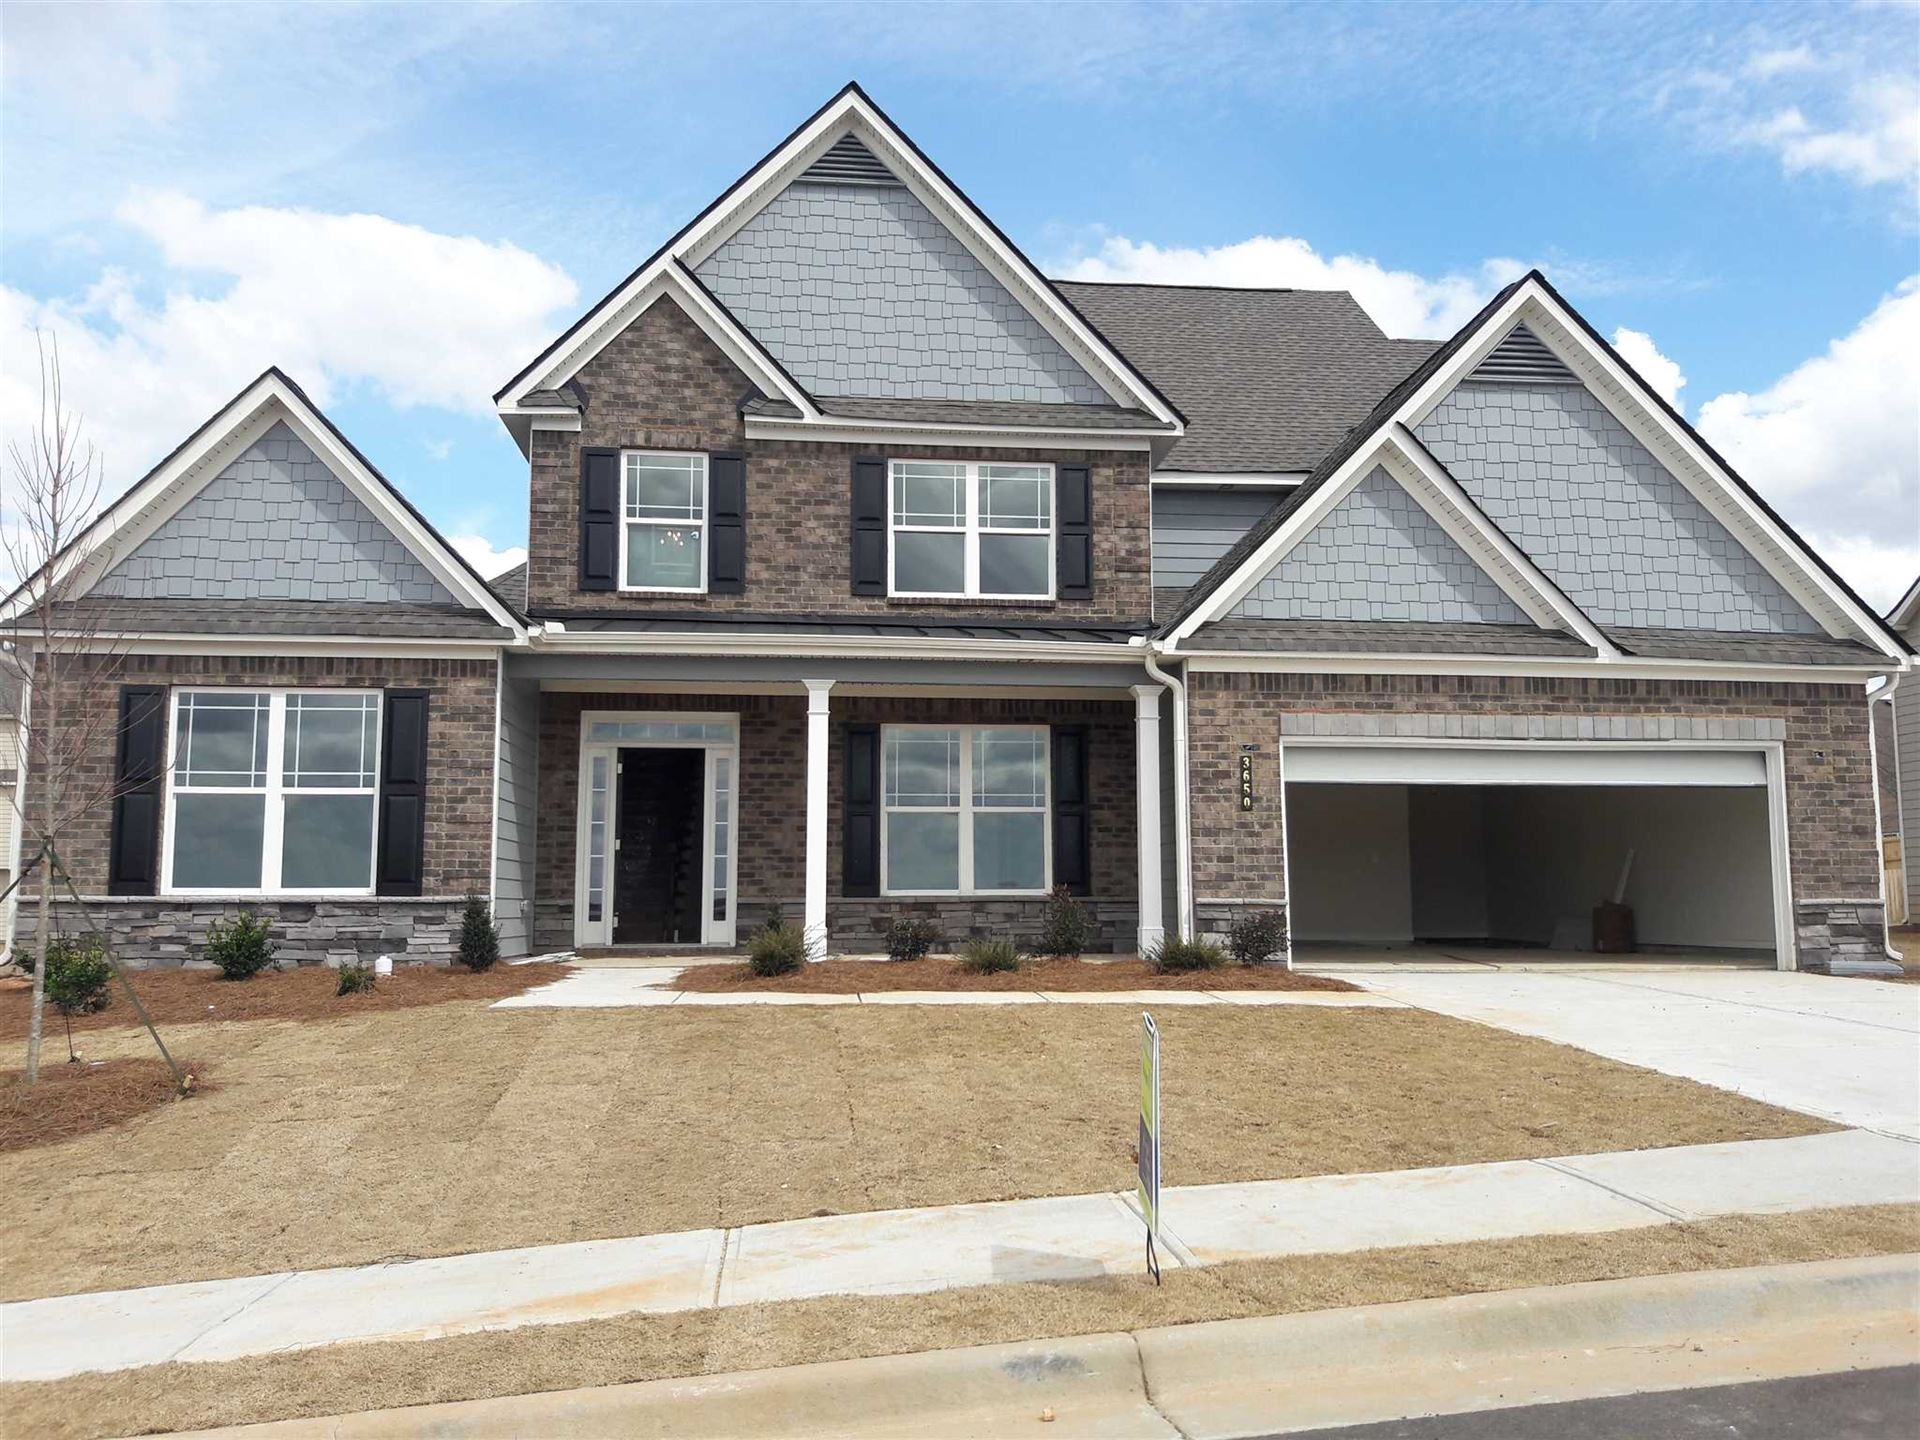 3650 Casual Ridge Way, Loganville, GA 30052 - MLS#: 8764888